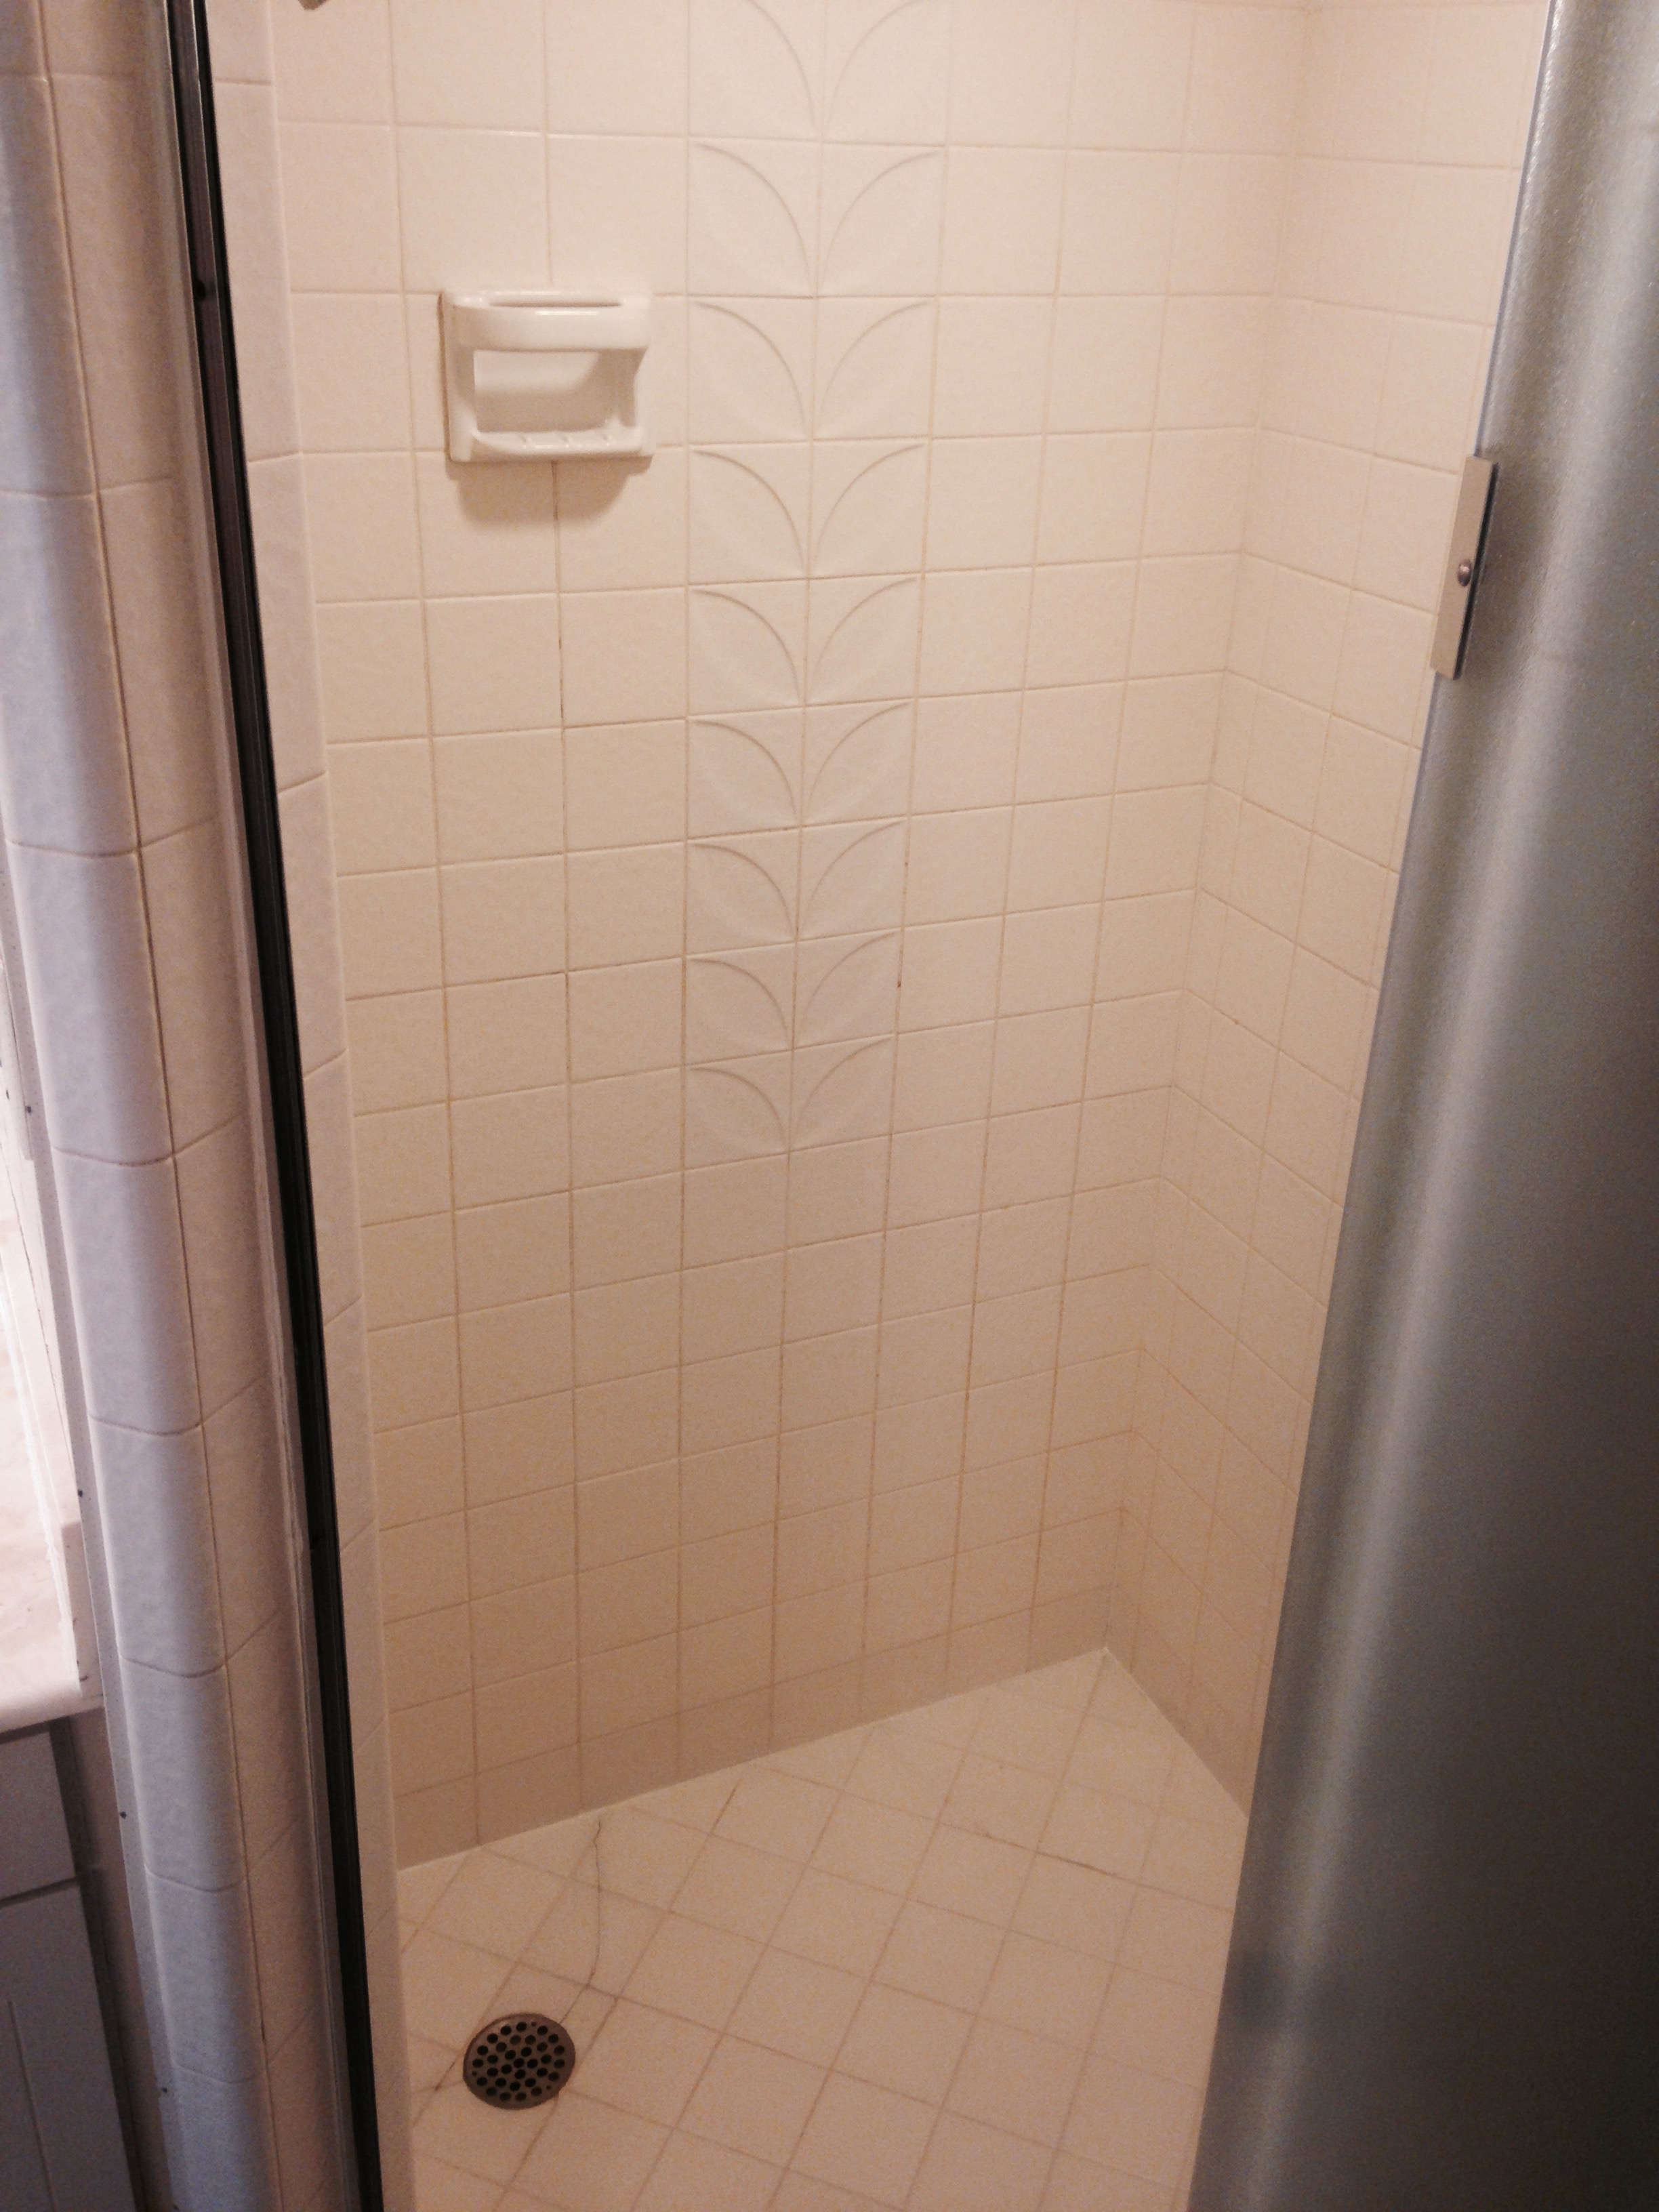 Meticulous Home Remodel Repair Also The Best Handymen Services Bathroom Grout And Caulk Repair